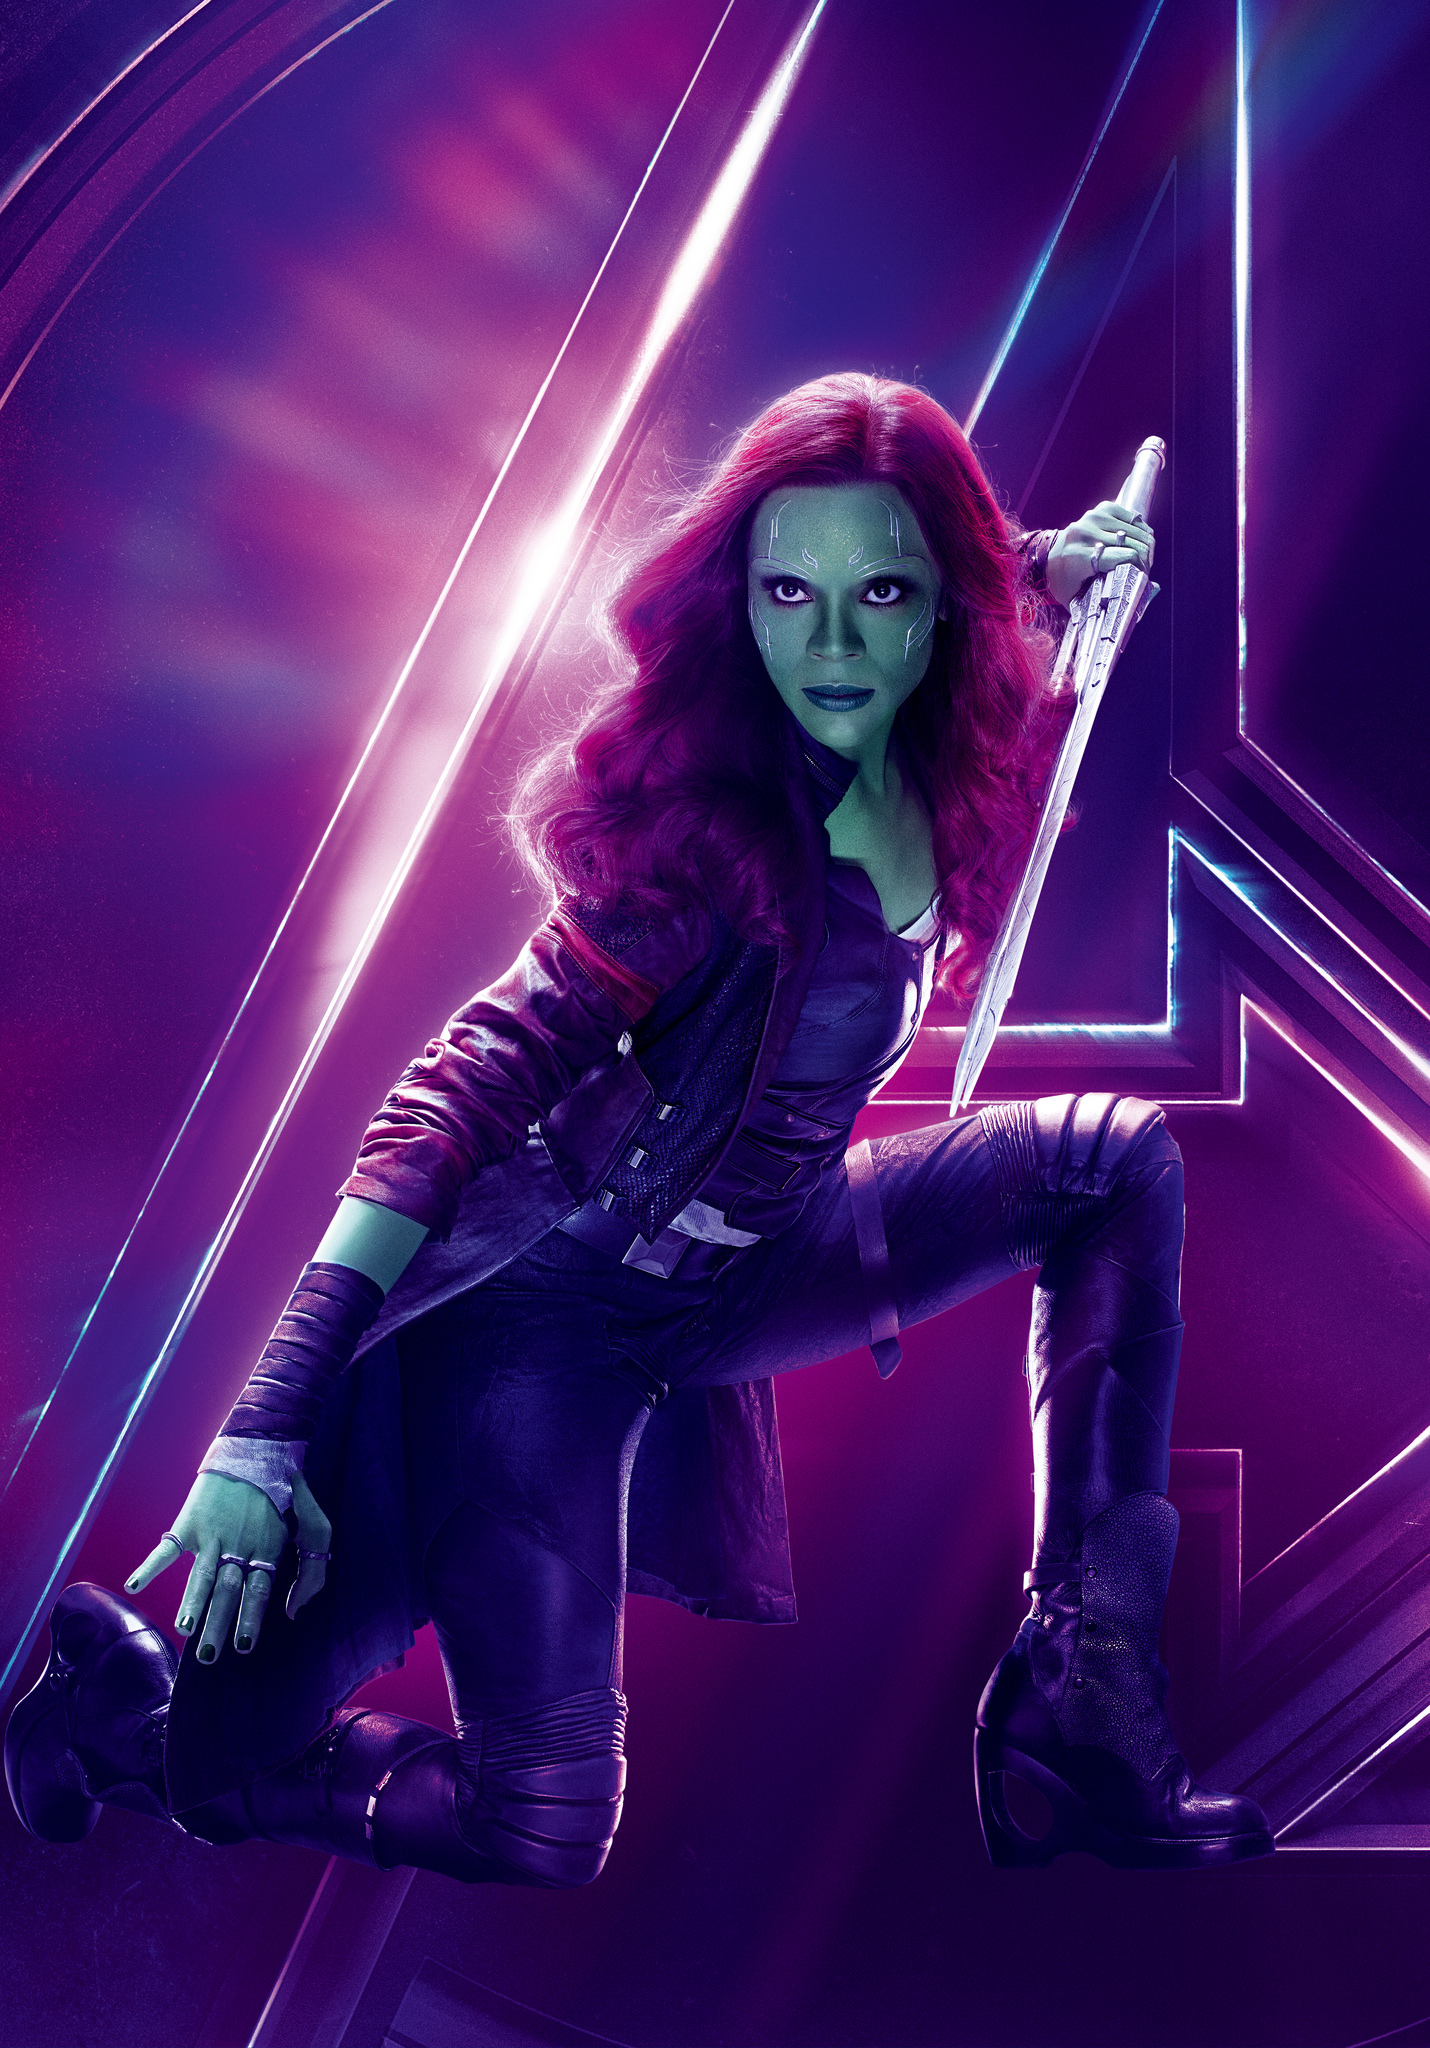 Gamora (Marvel Cinematic Universe)